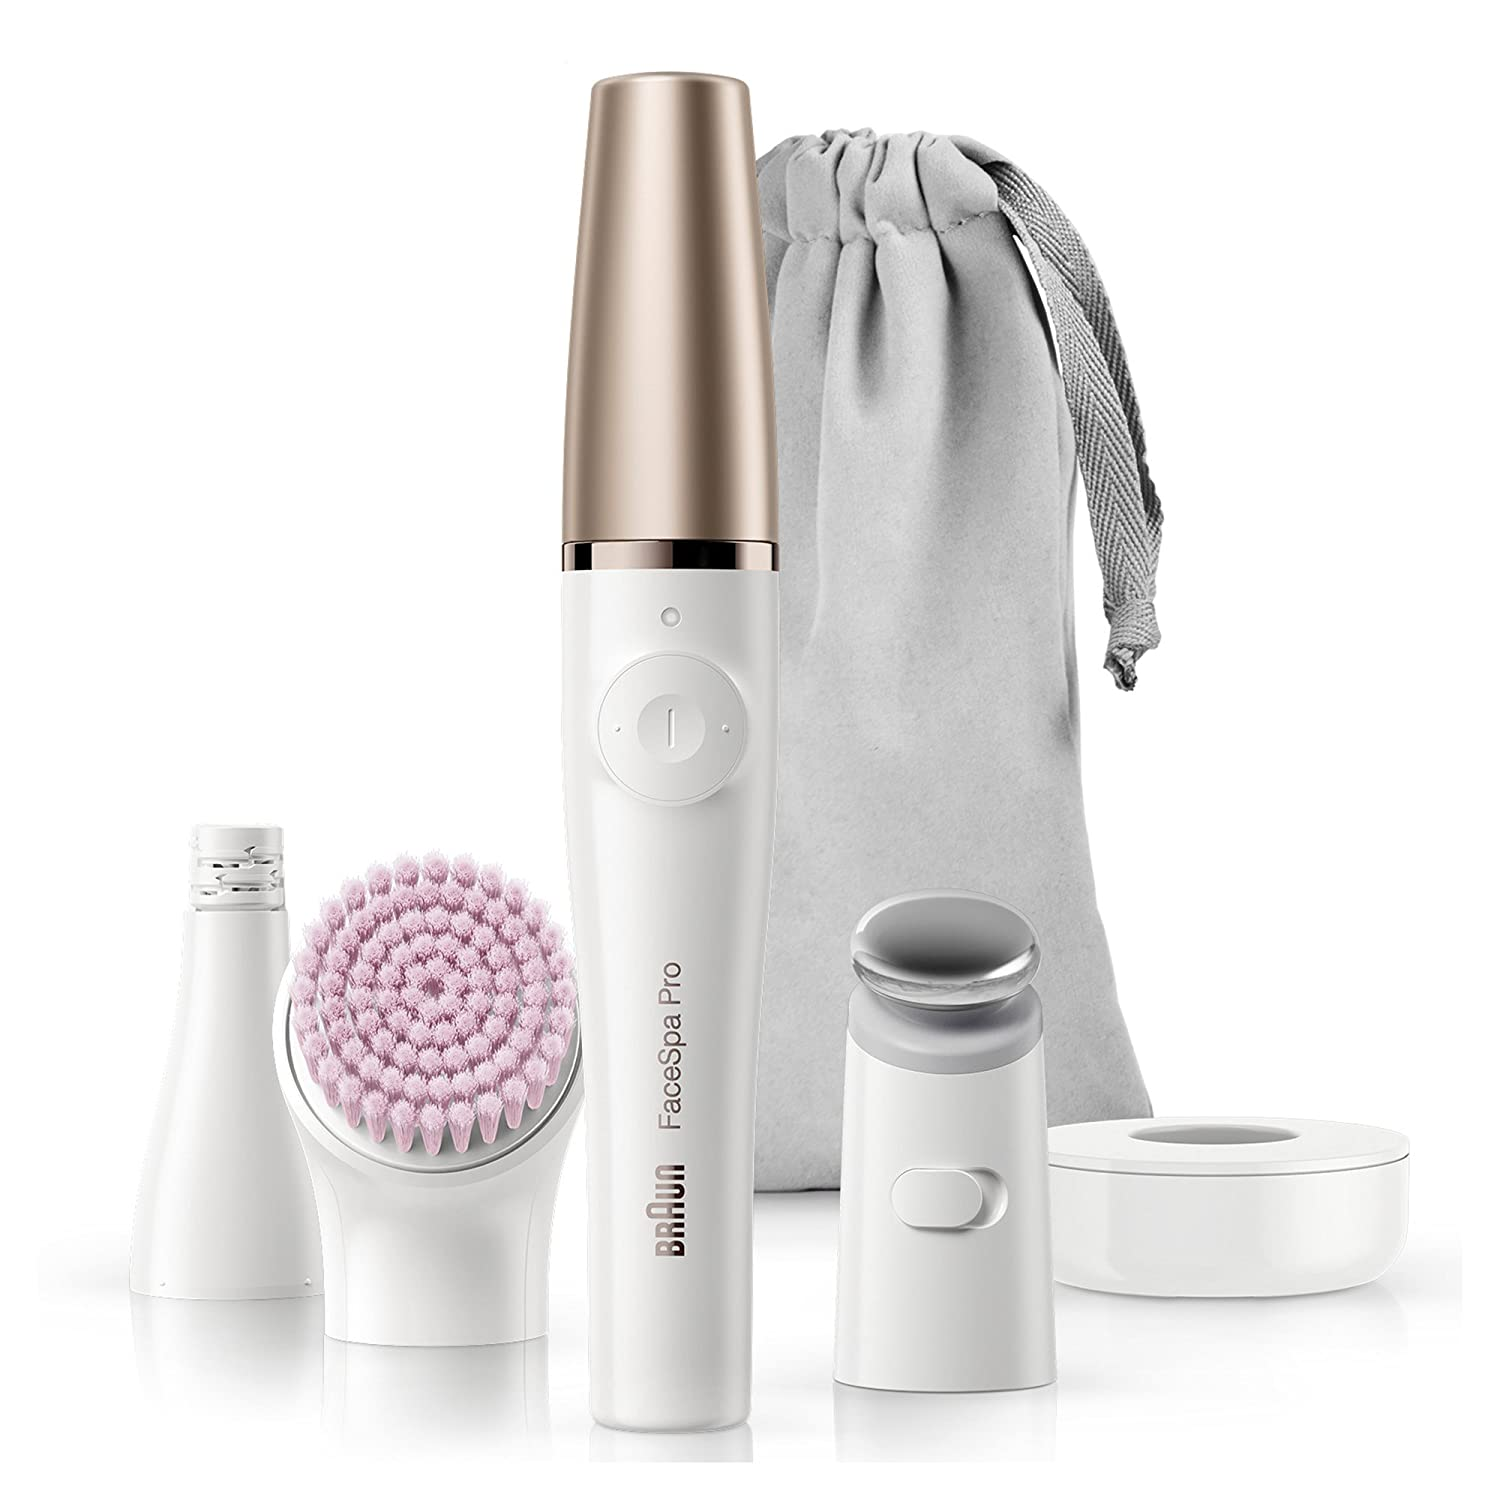 Braun FaceSpa Pro 911 Epilator 3-in-1 Facial Epilating Cleansing and Skin Toning System with 3 Extras, White/Bronze Procter & Gamble 4210201185789